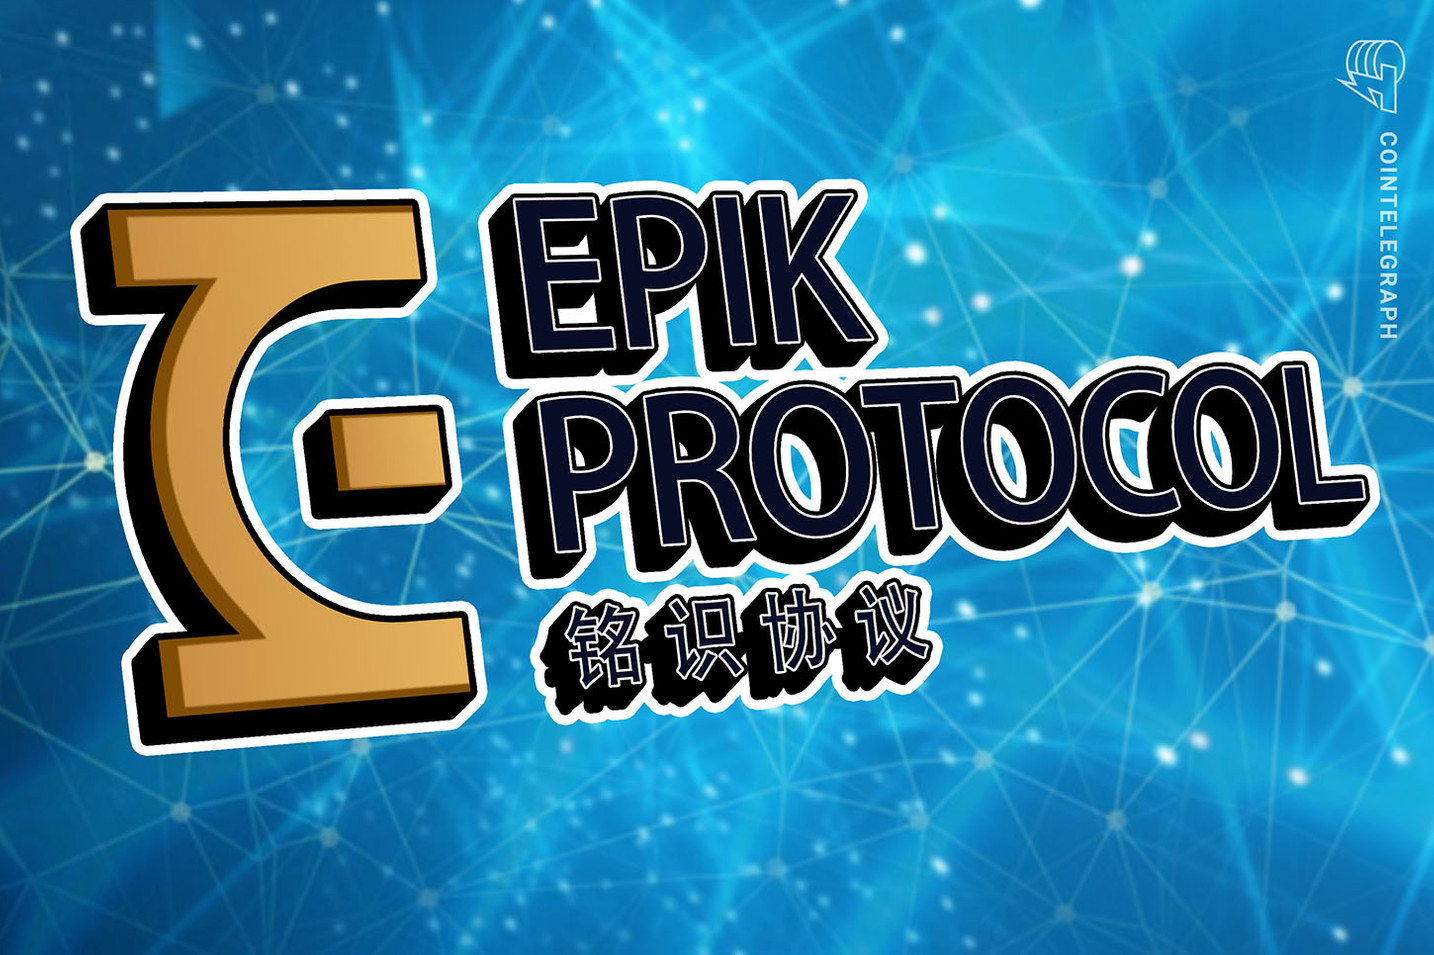 Healthcare Chain co-developed by Tsinghua and EpiK